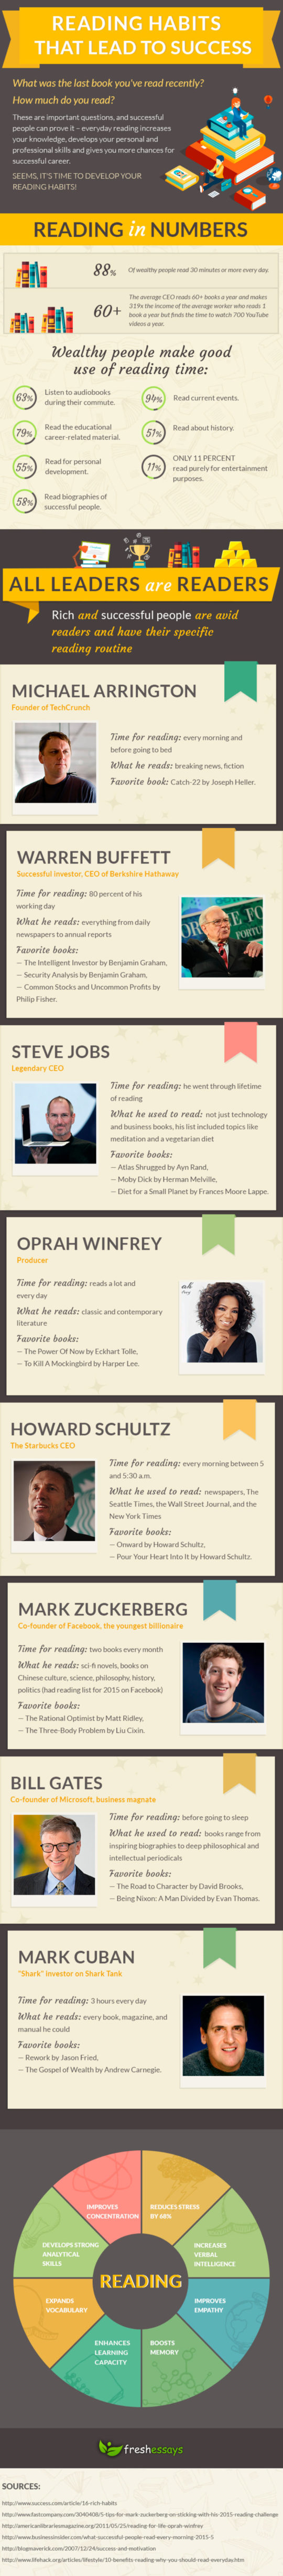 The reading habits of highly successful people #infographic